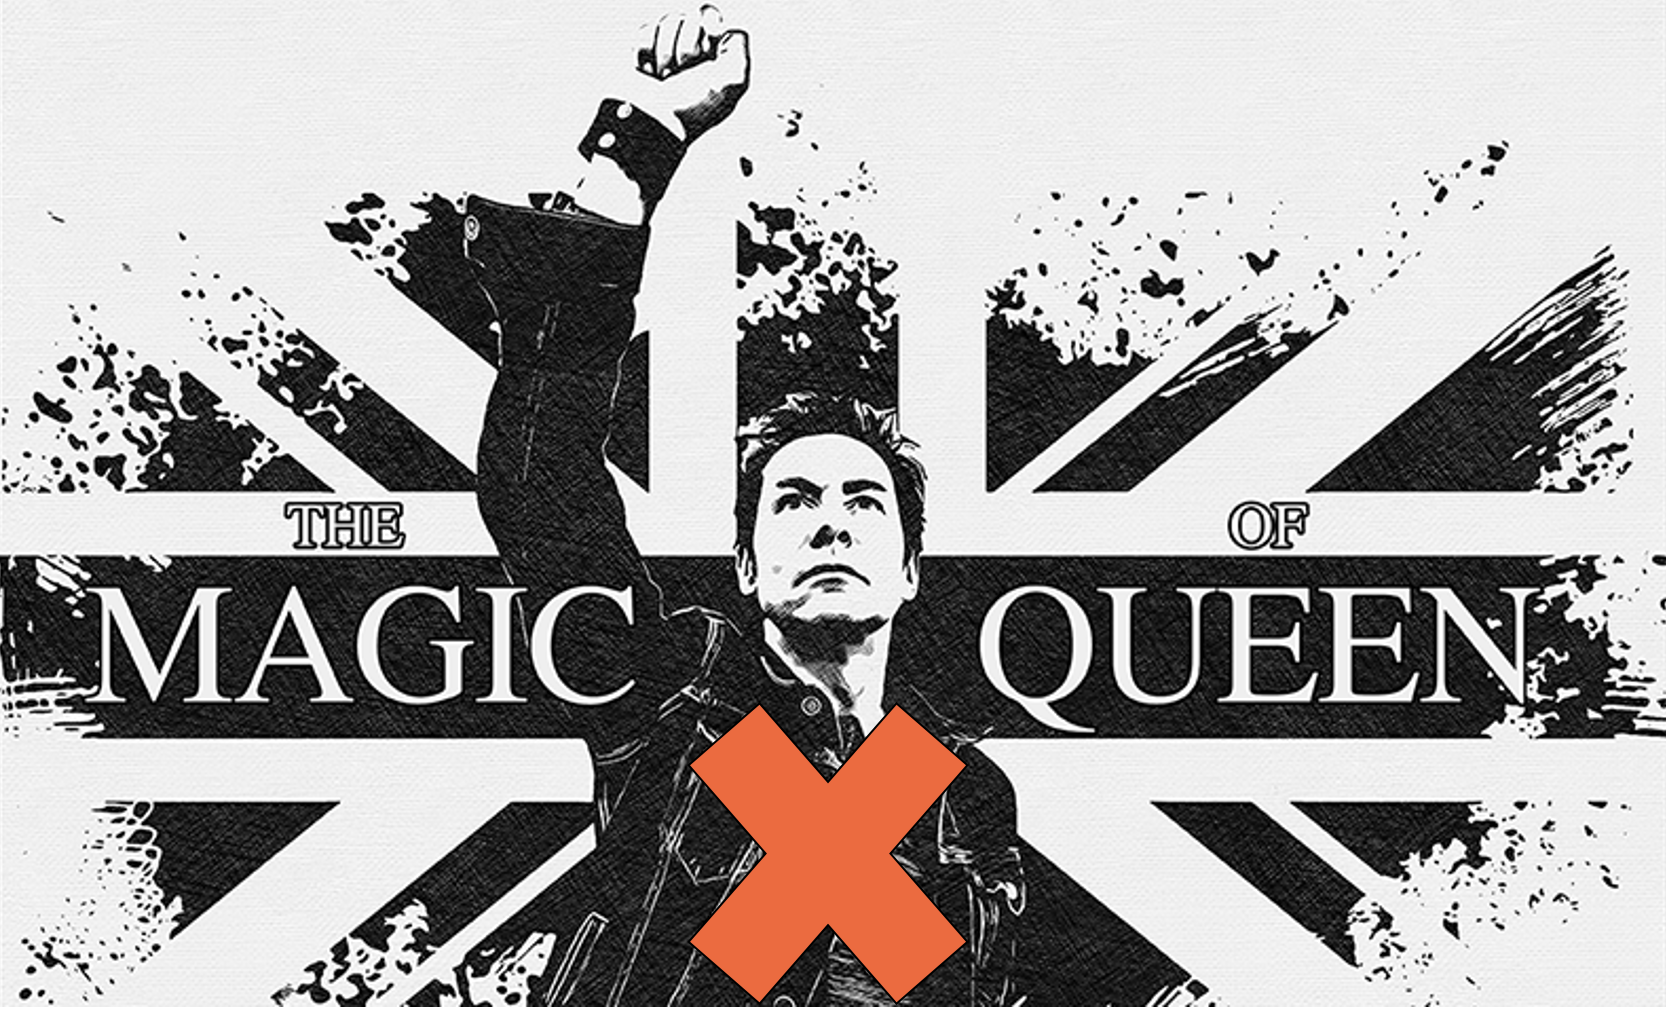 magic of queen canceled